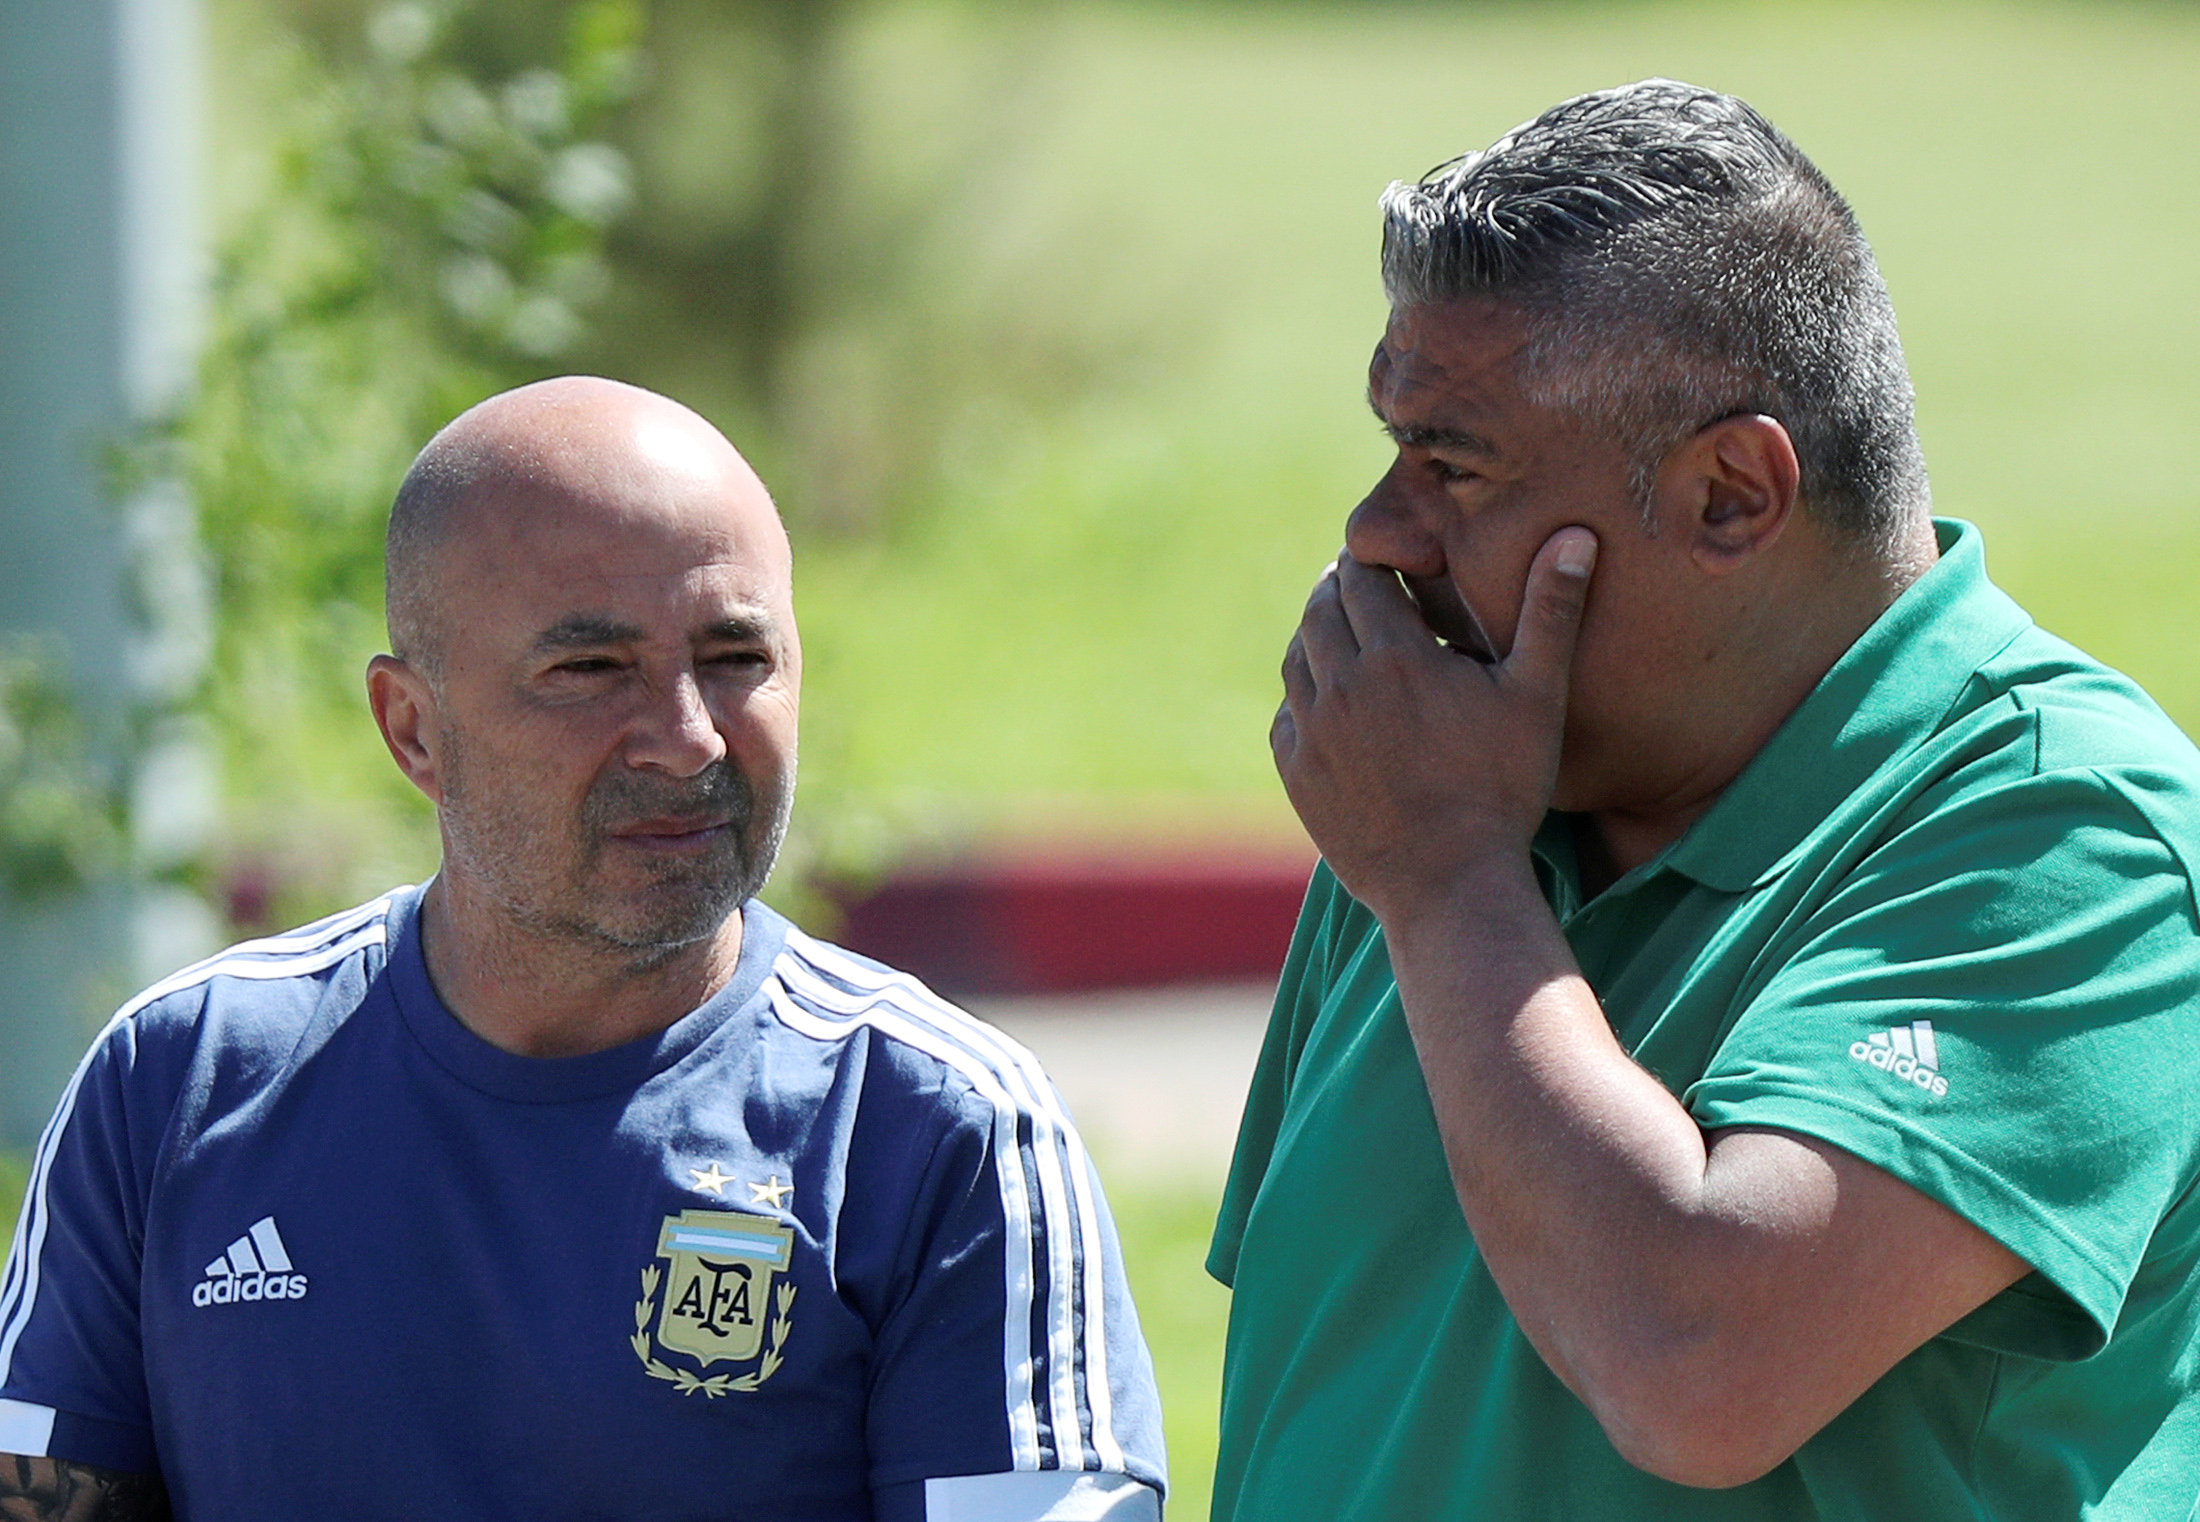 Football: Sampaoli stands down as Argentina coach after World Cup failure